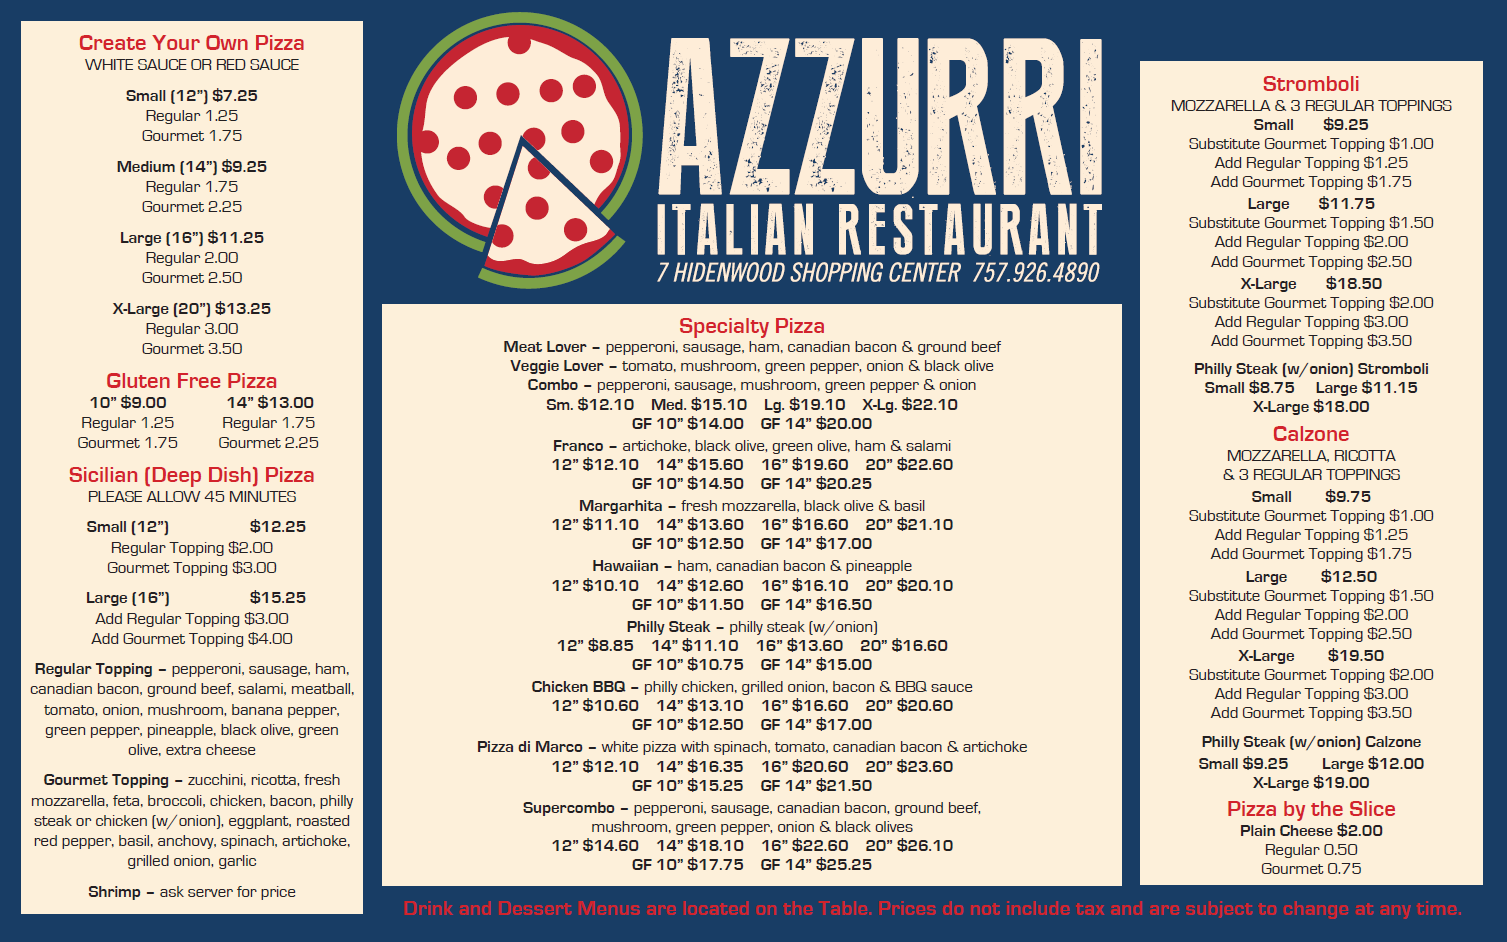 Azzurri Menu Page   Restaurants That Deliver    Menu